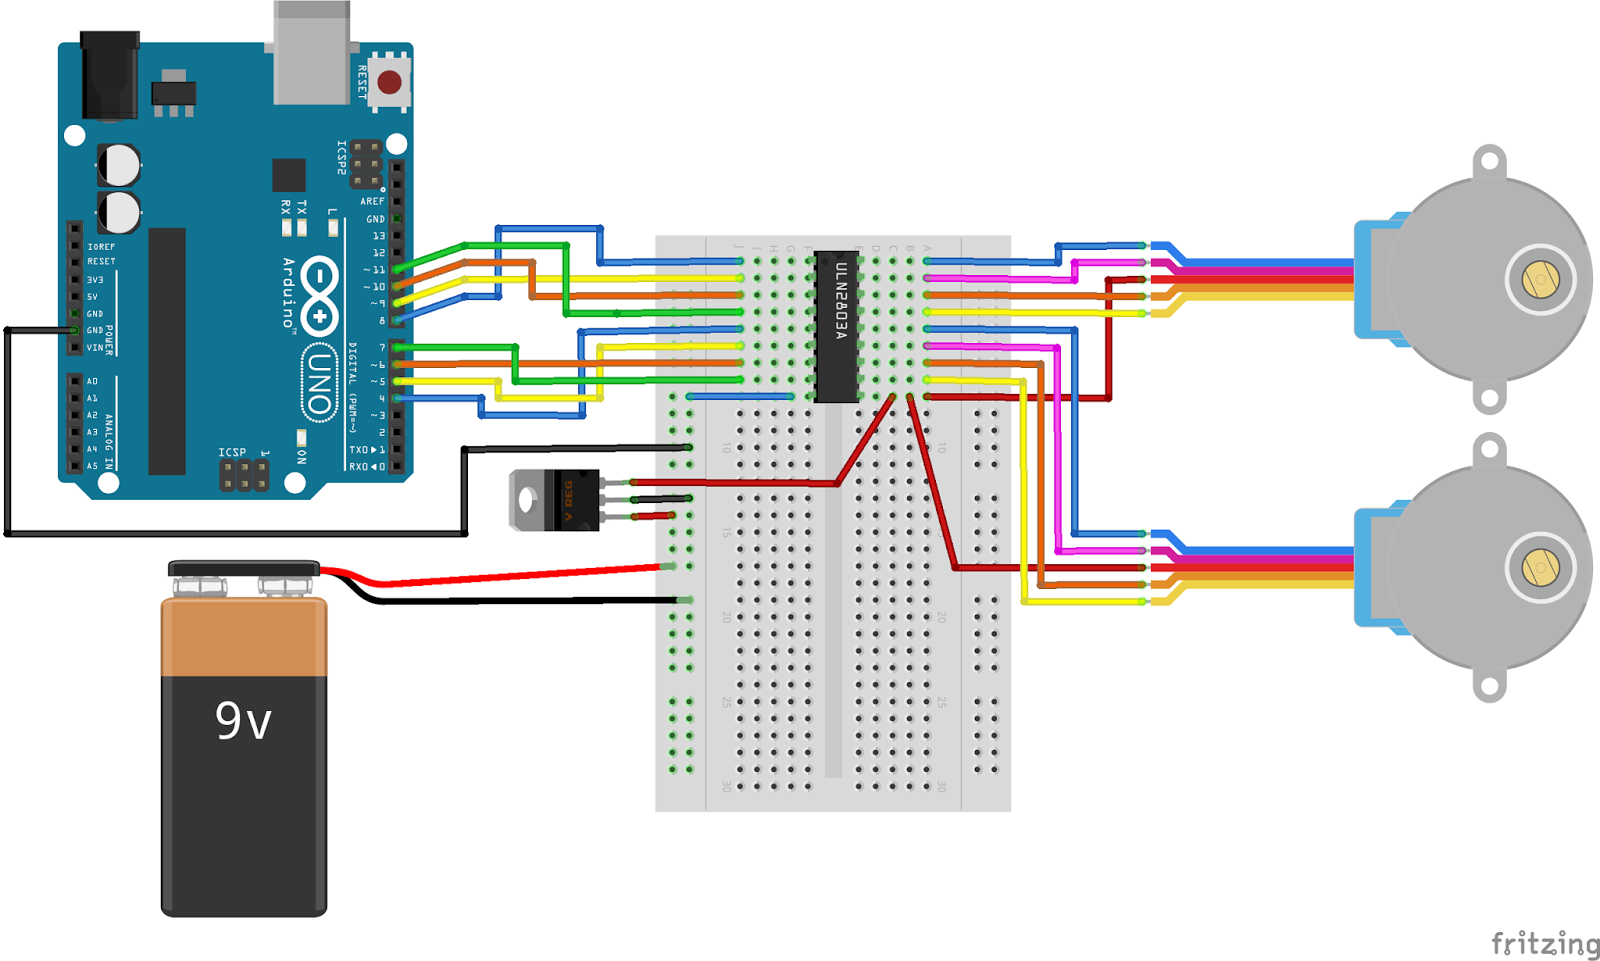 Apologies if the wiring is confusing, this was my first time producing a circuit  diagram with Fritzing!